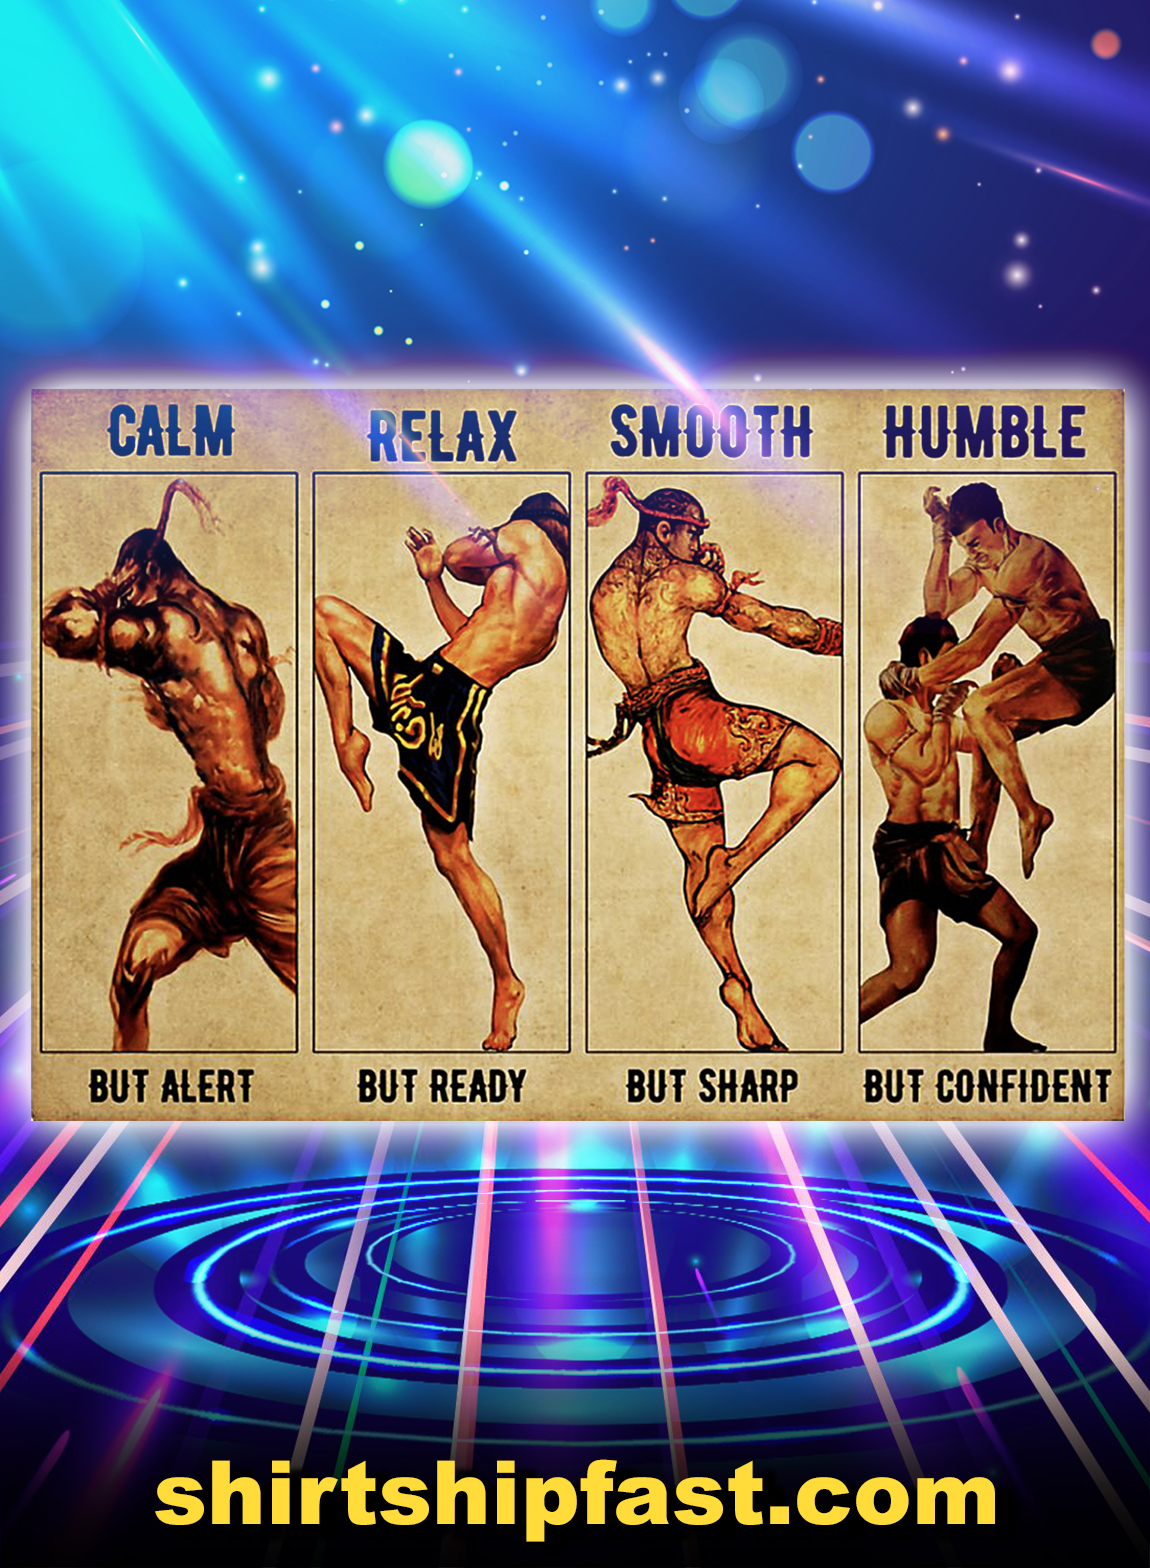 Muay thai calm relax smooth humble poster - A3